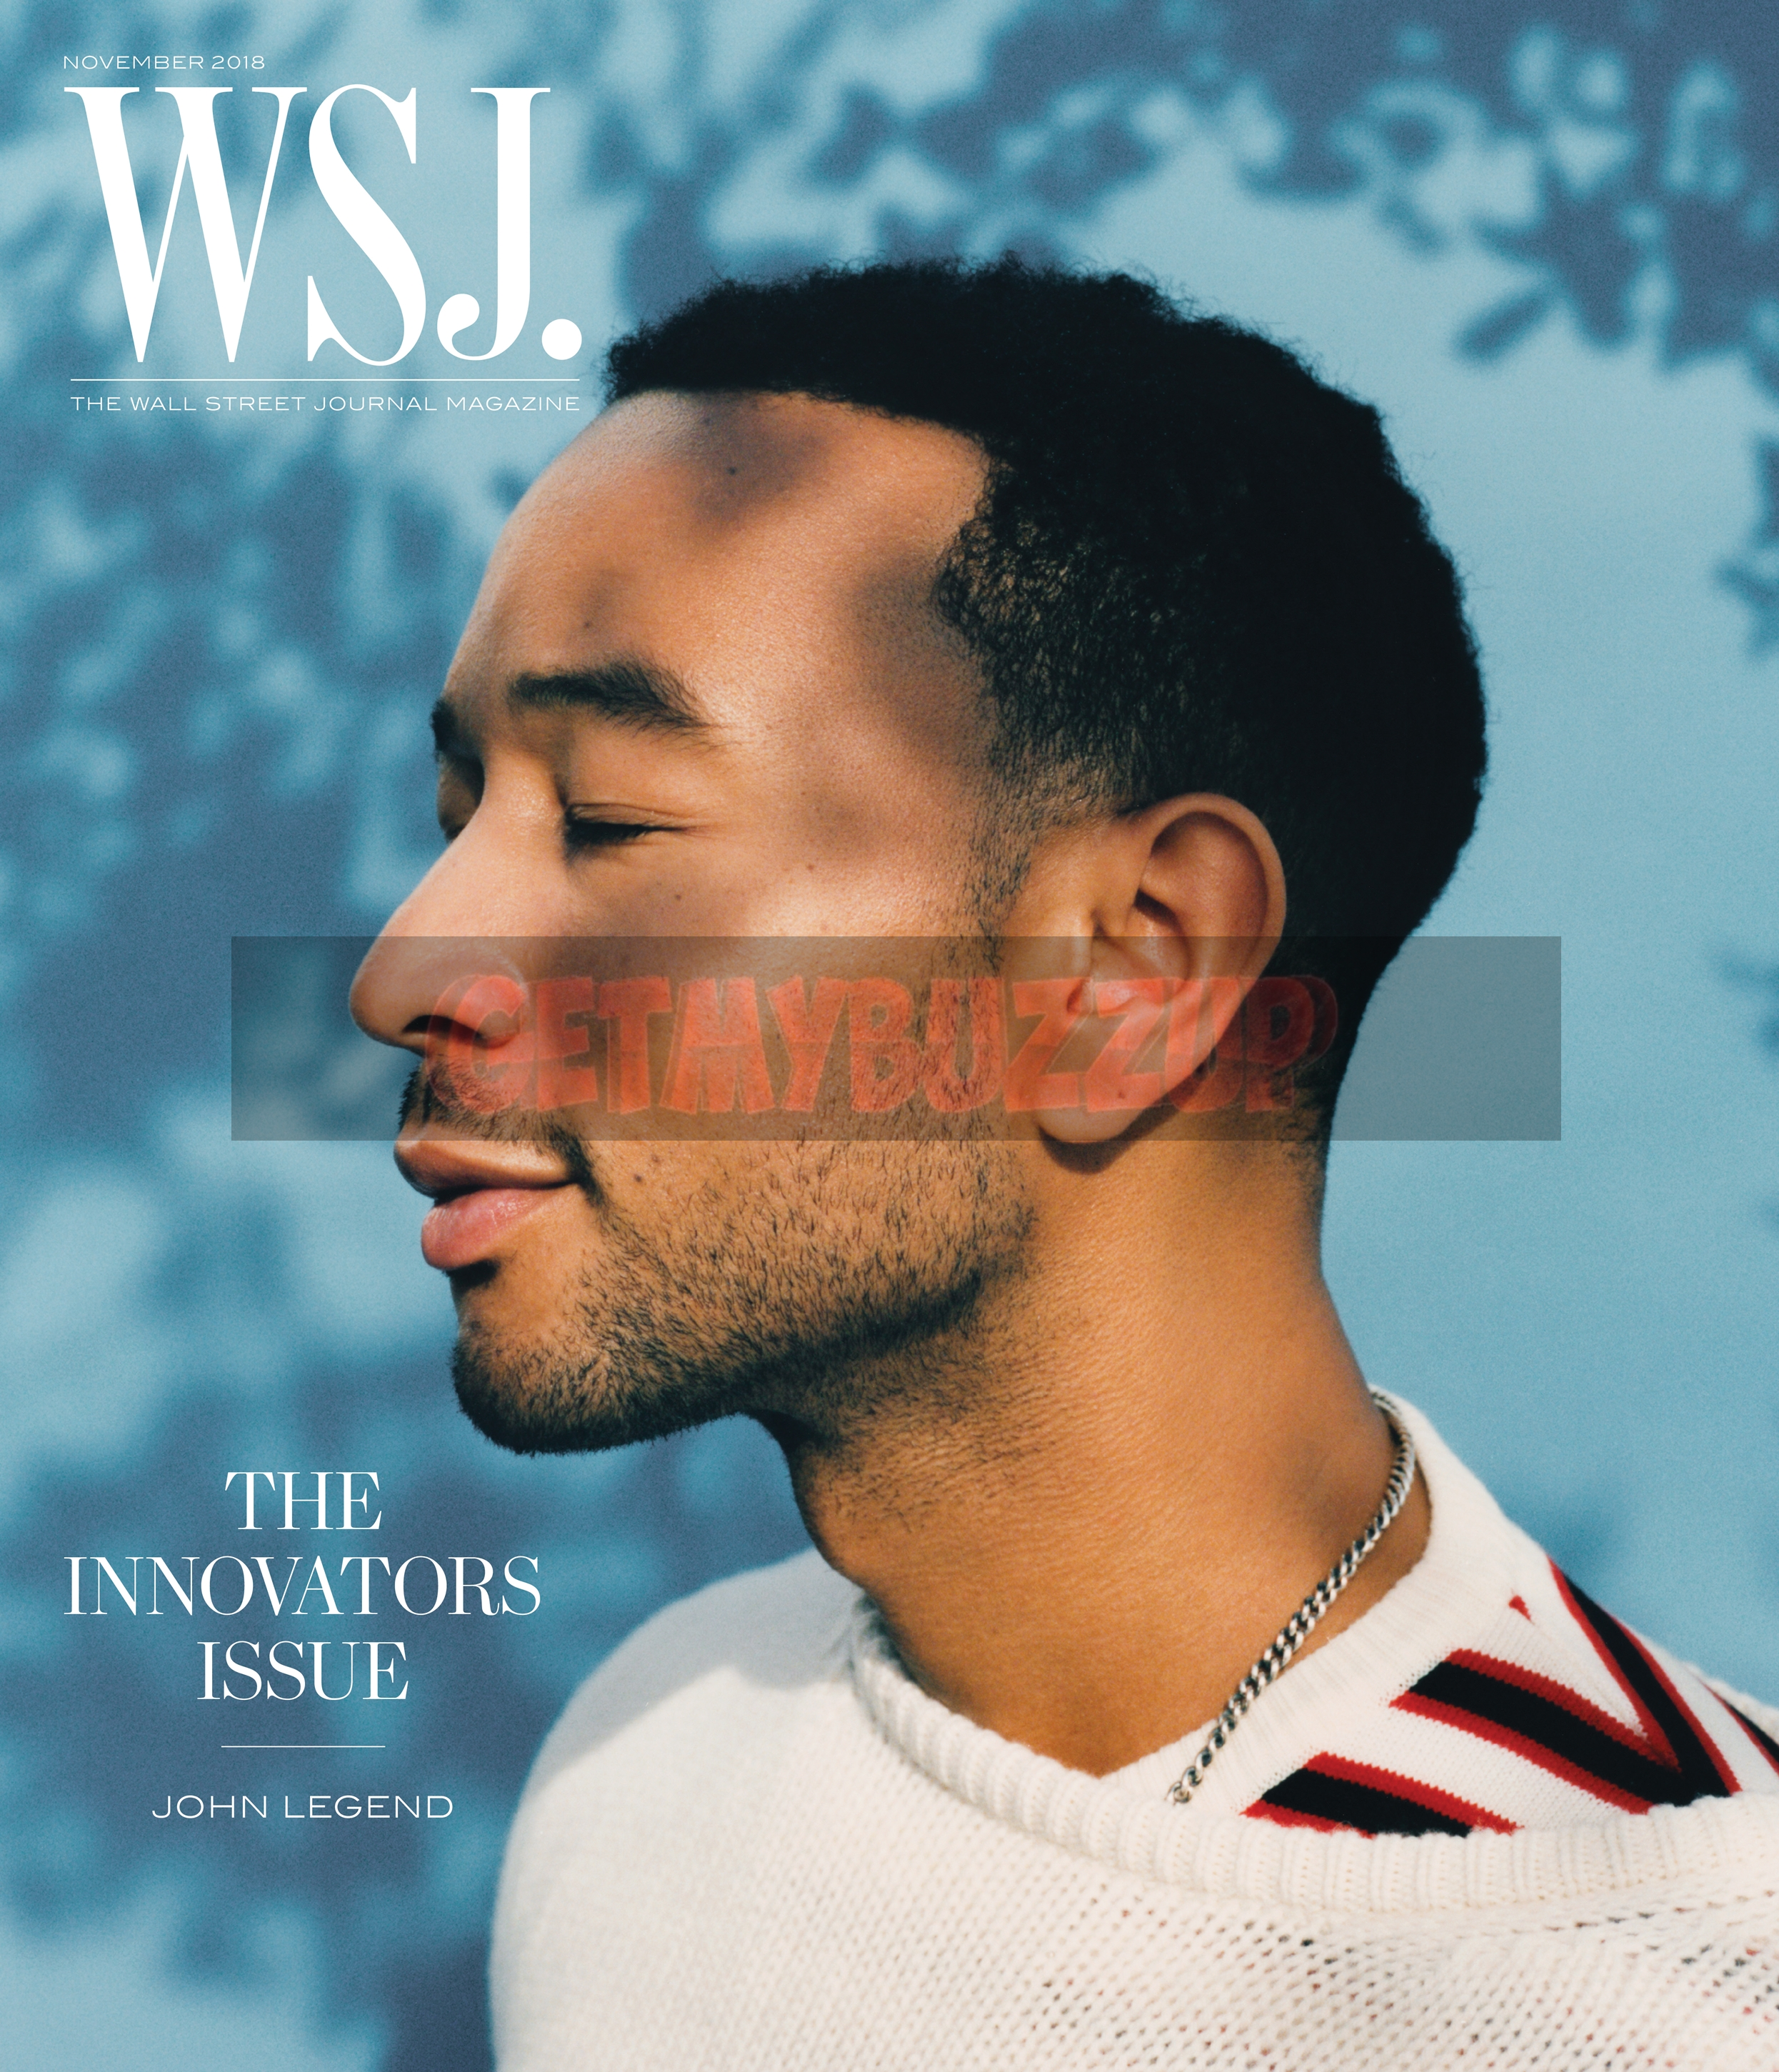 John Legend, Ralph Lauren, Jonah Hill & More Attend the WSJ. Magazine 2018 Innovator Awards [Photos]